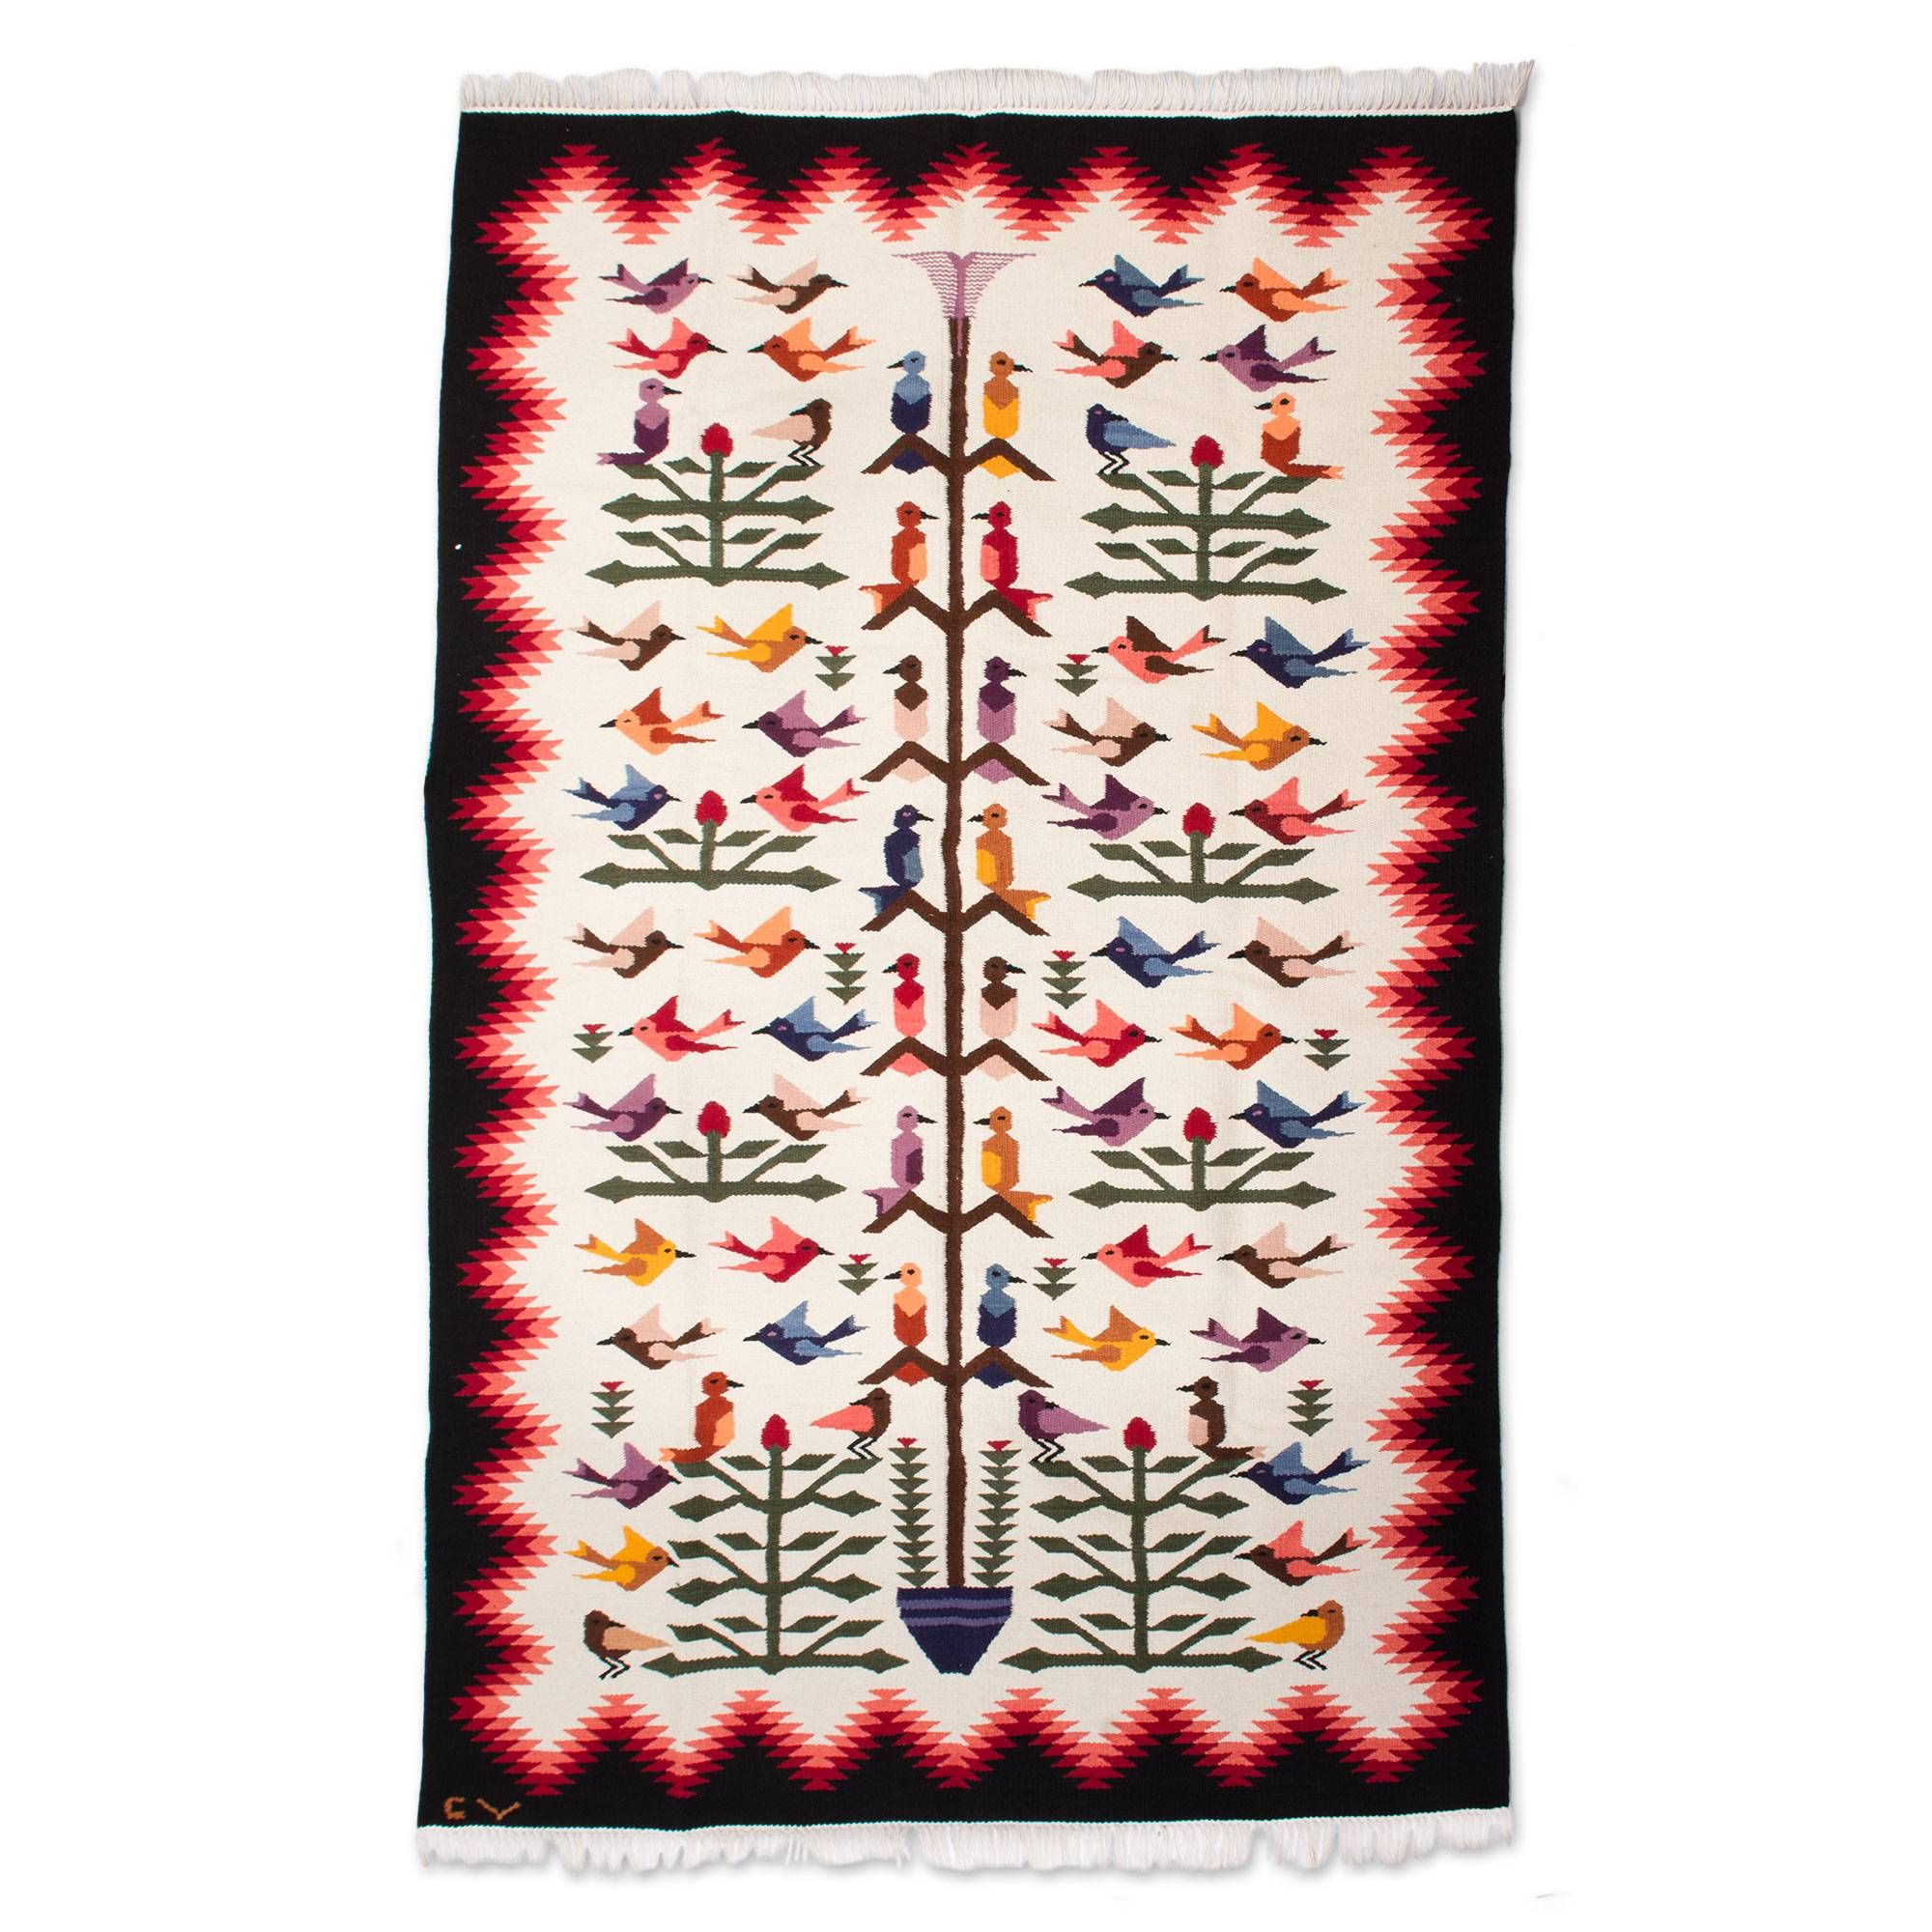 Perfect Exquisitely Handcrafted Bird Area Rug (6x8)   Hummingbirds | NOVICA